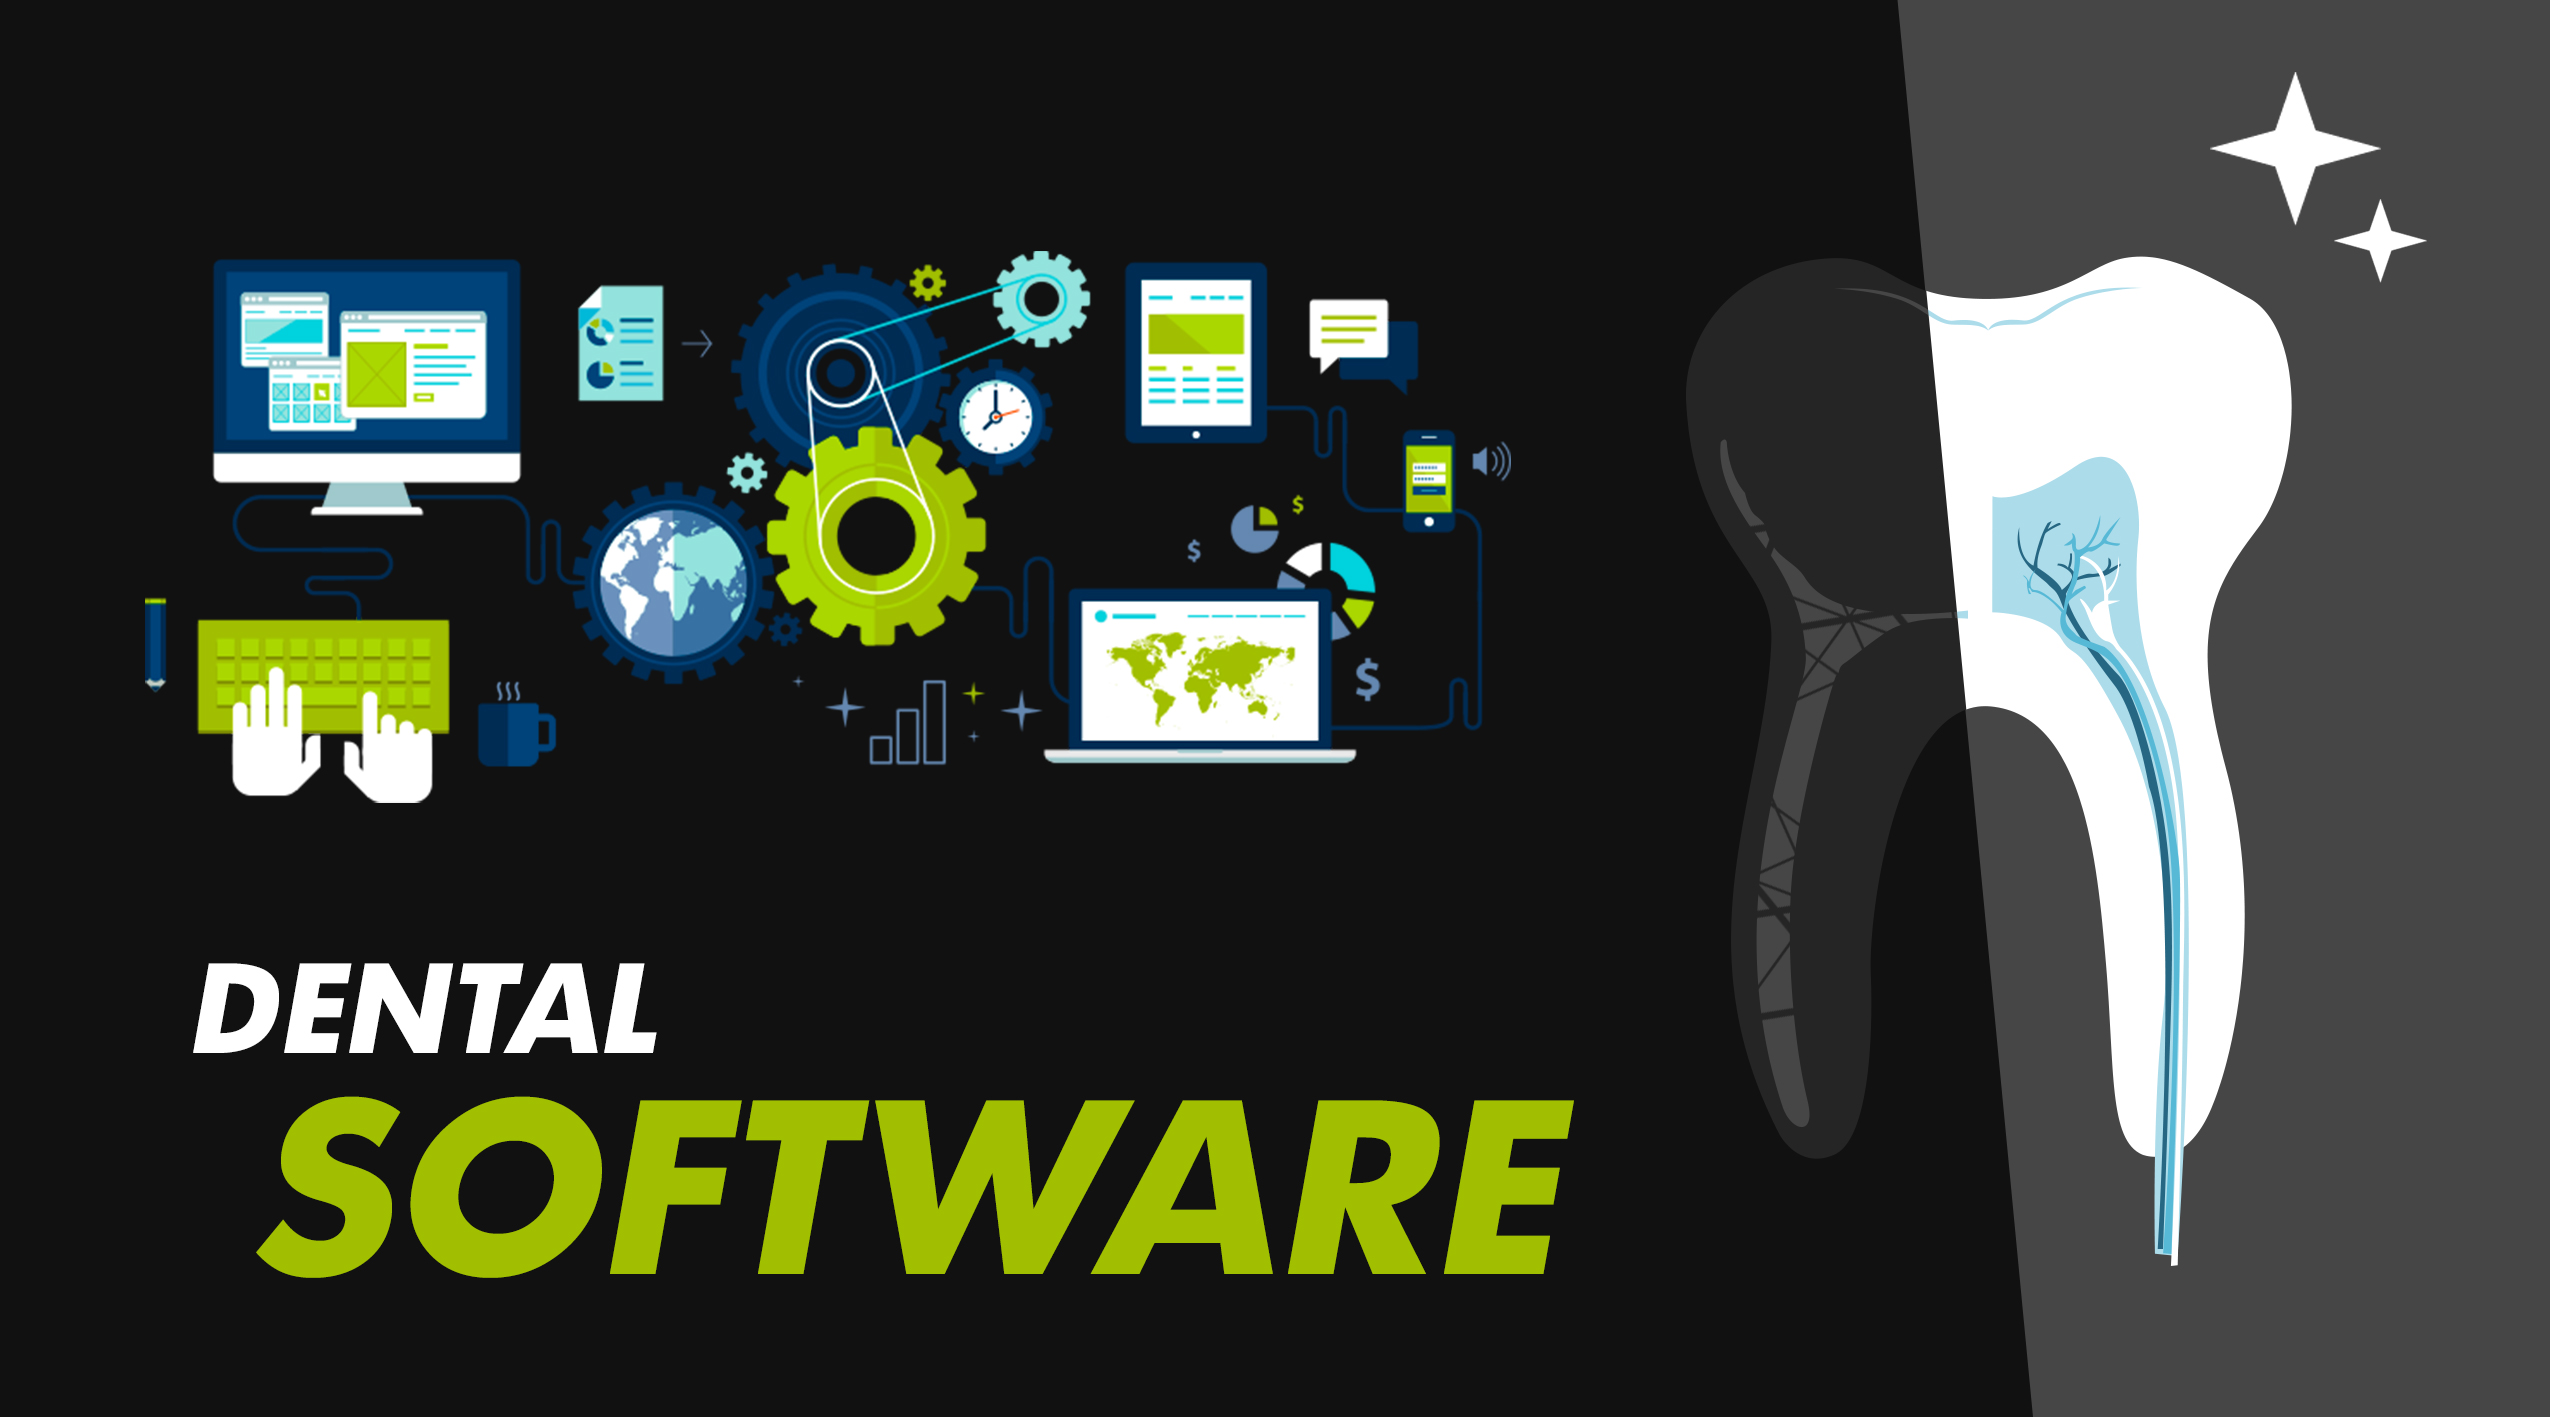 Explore Dental Software and Dental IT Support